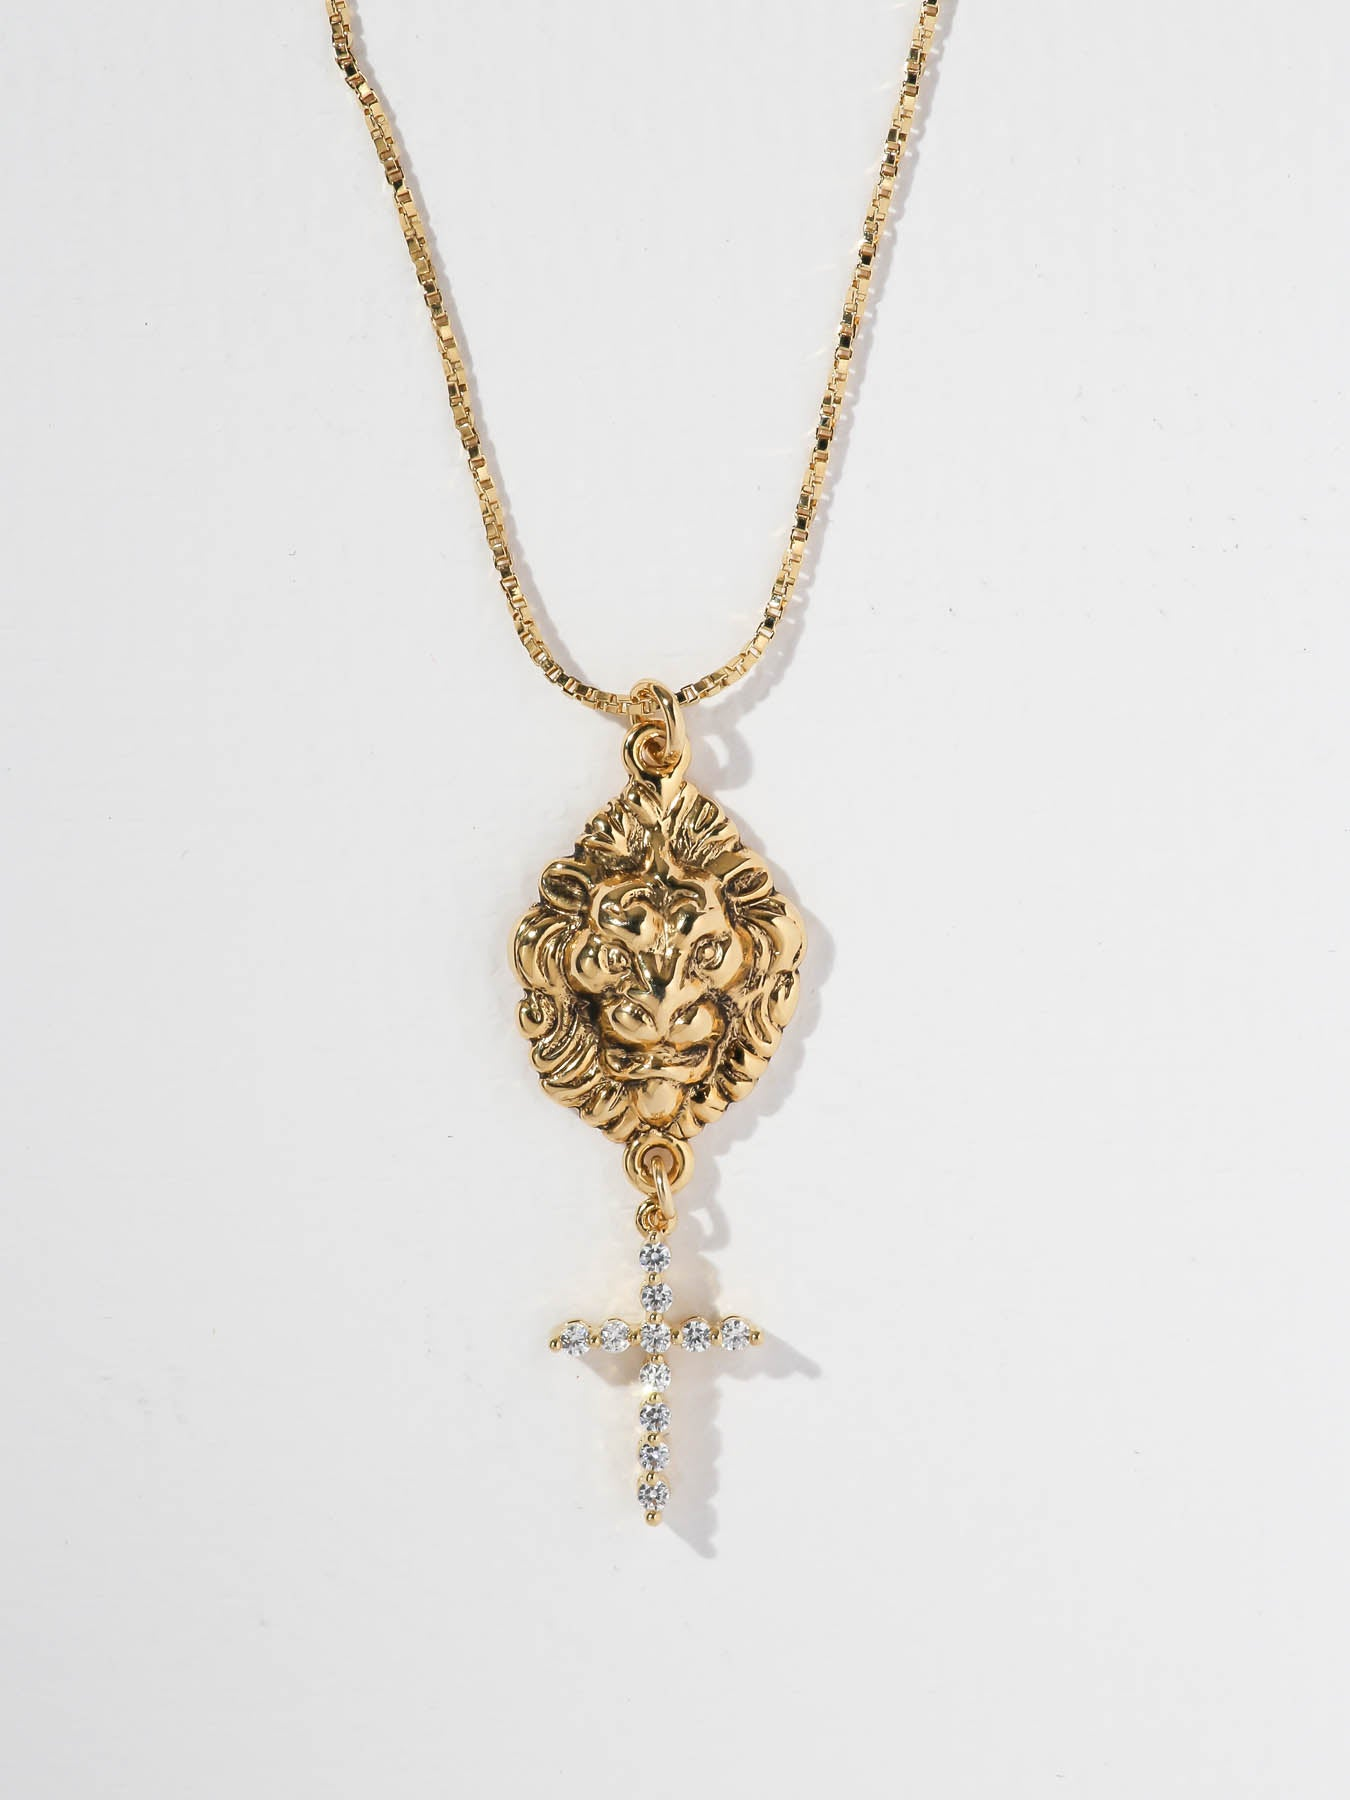 The Royals Lionhead & Diamond Cross Necklace